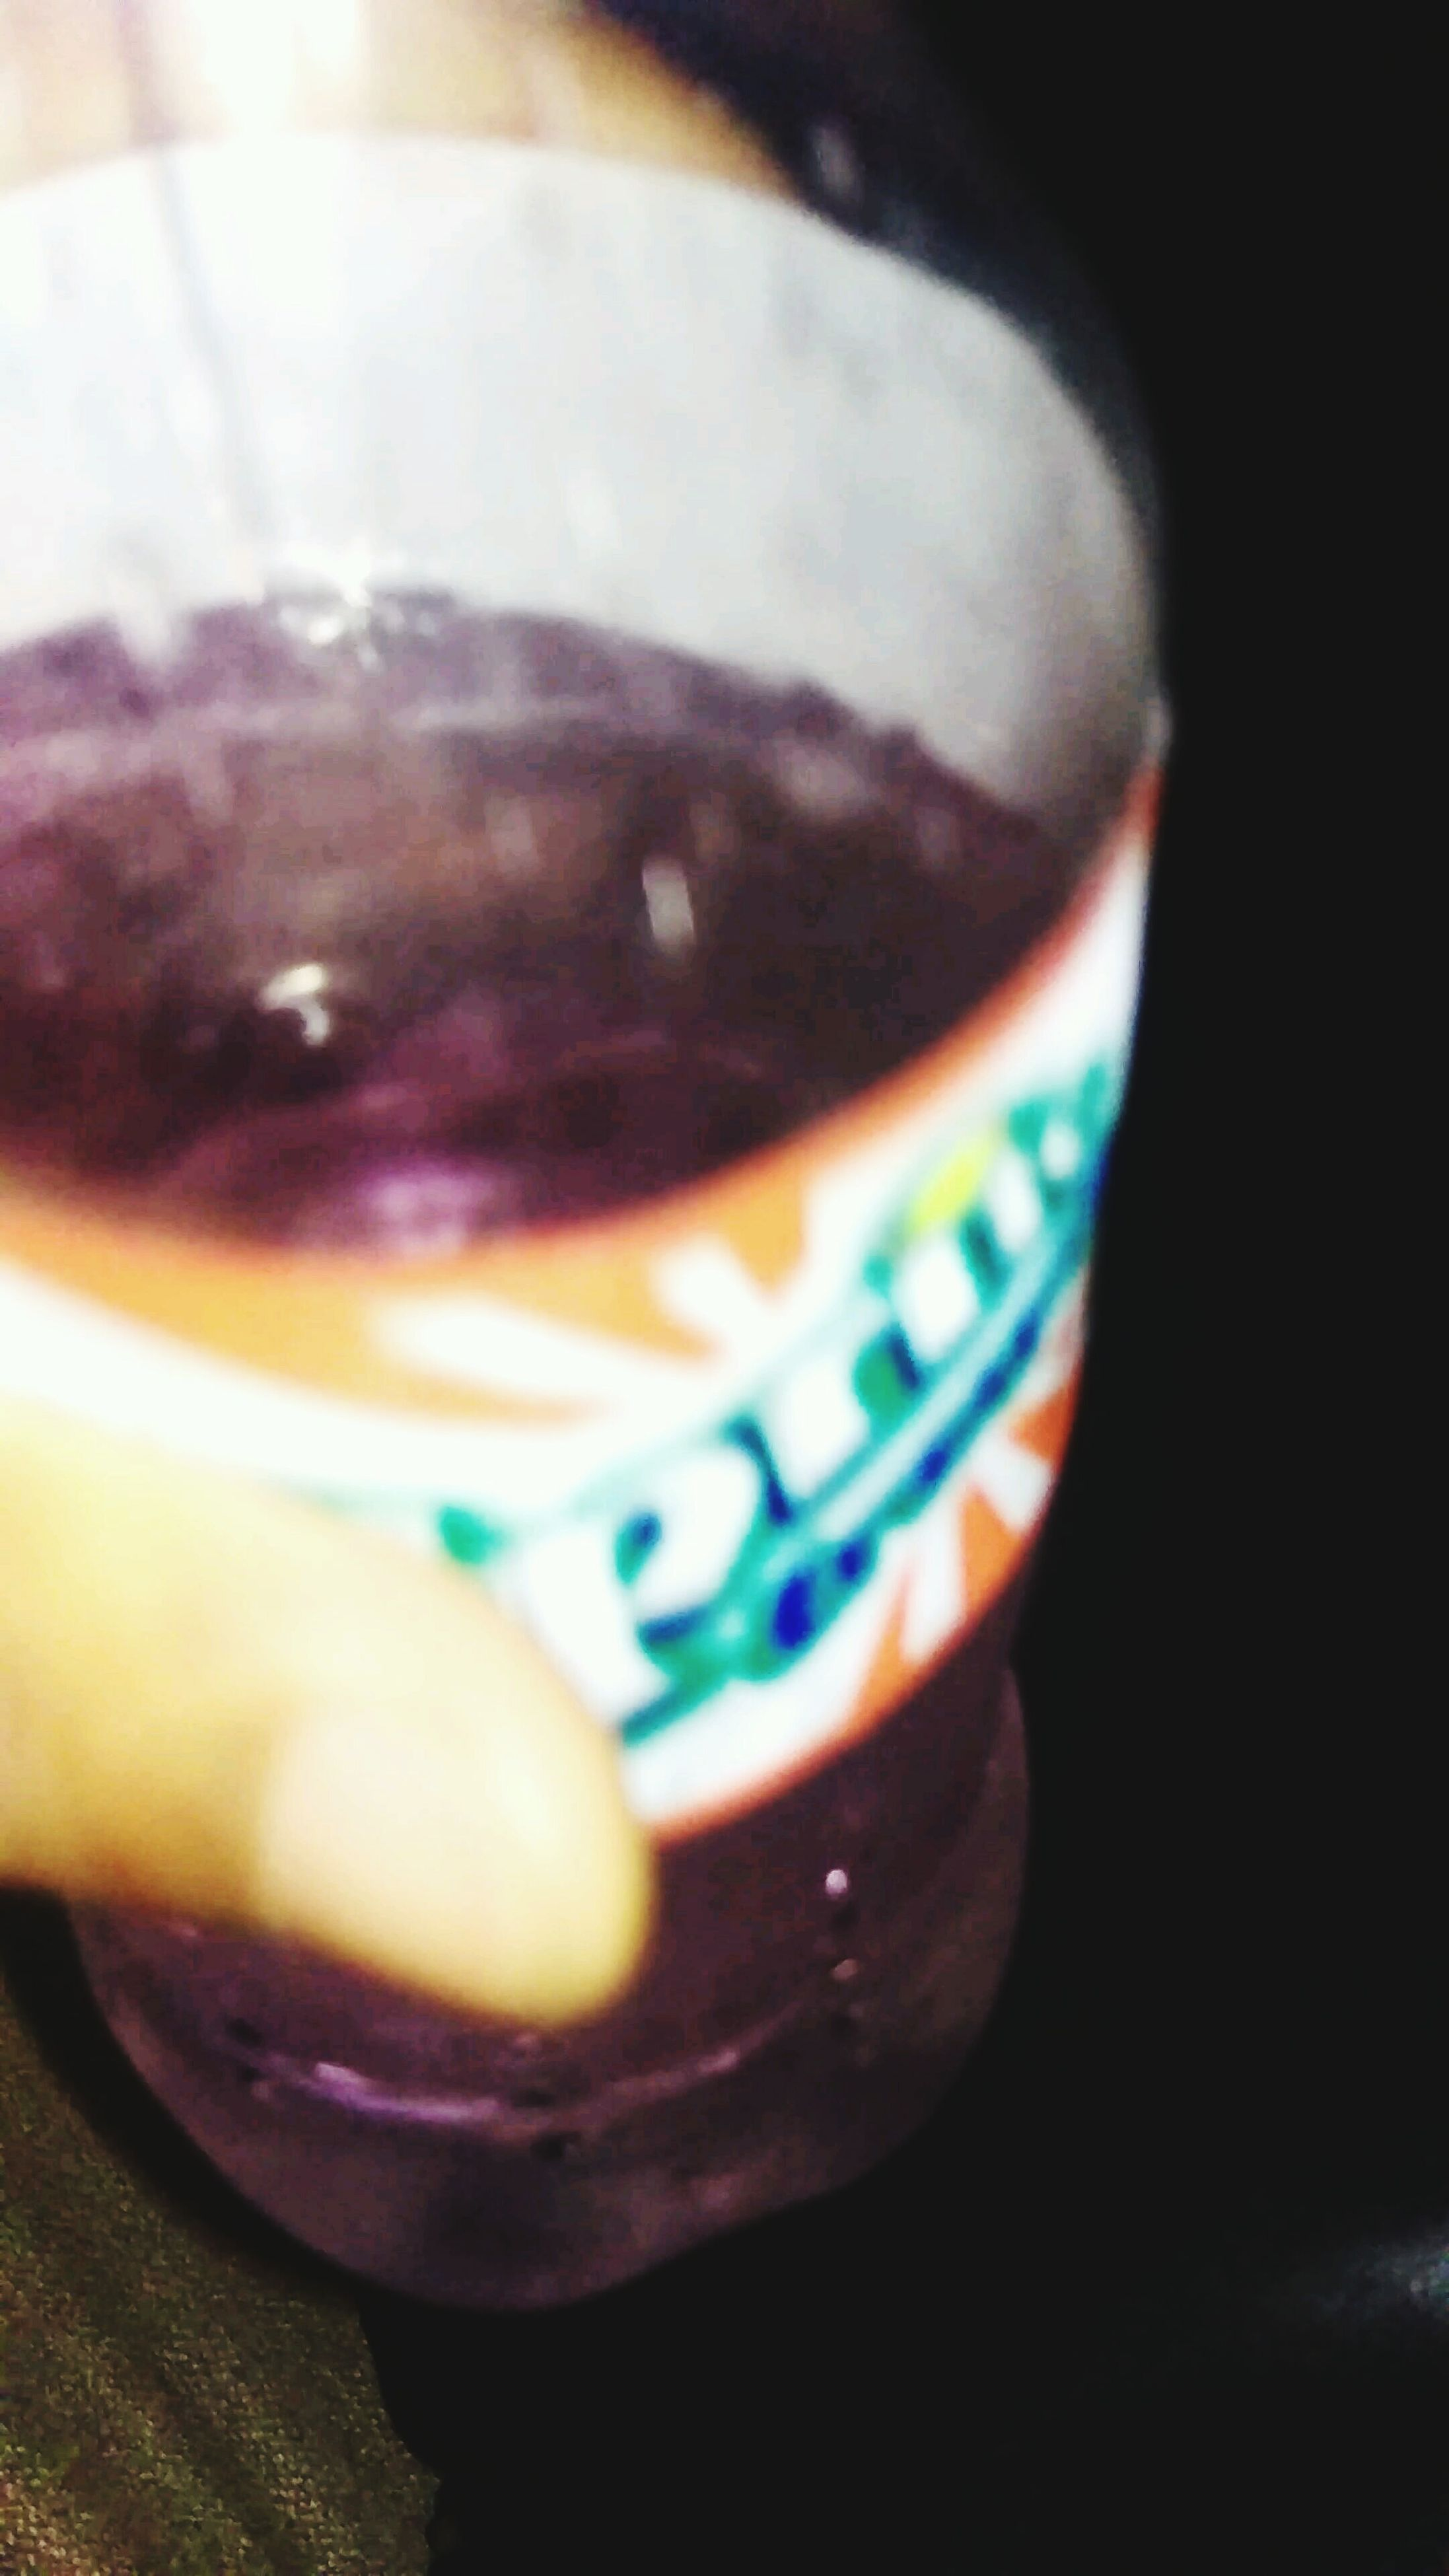 drink, food and drink, close-up, refreshment, indoors, part of, person, focus on foreground, drinking glass, freshness, cropped, lifestyles, alcohol, holding, leisure activity, coffee cup, frothy drink